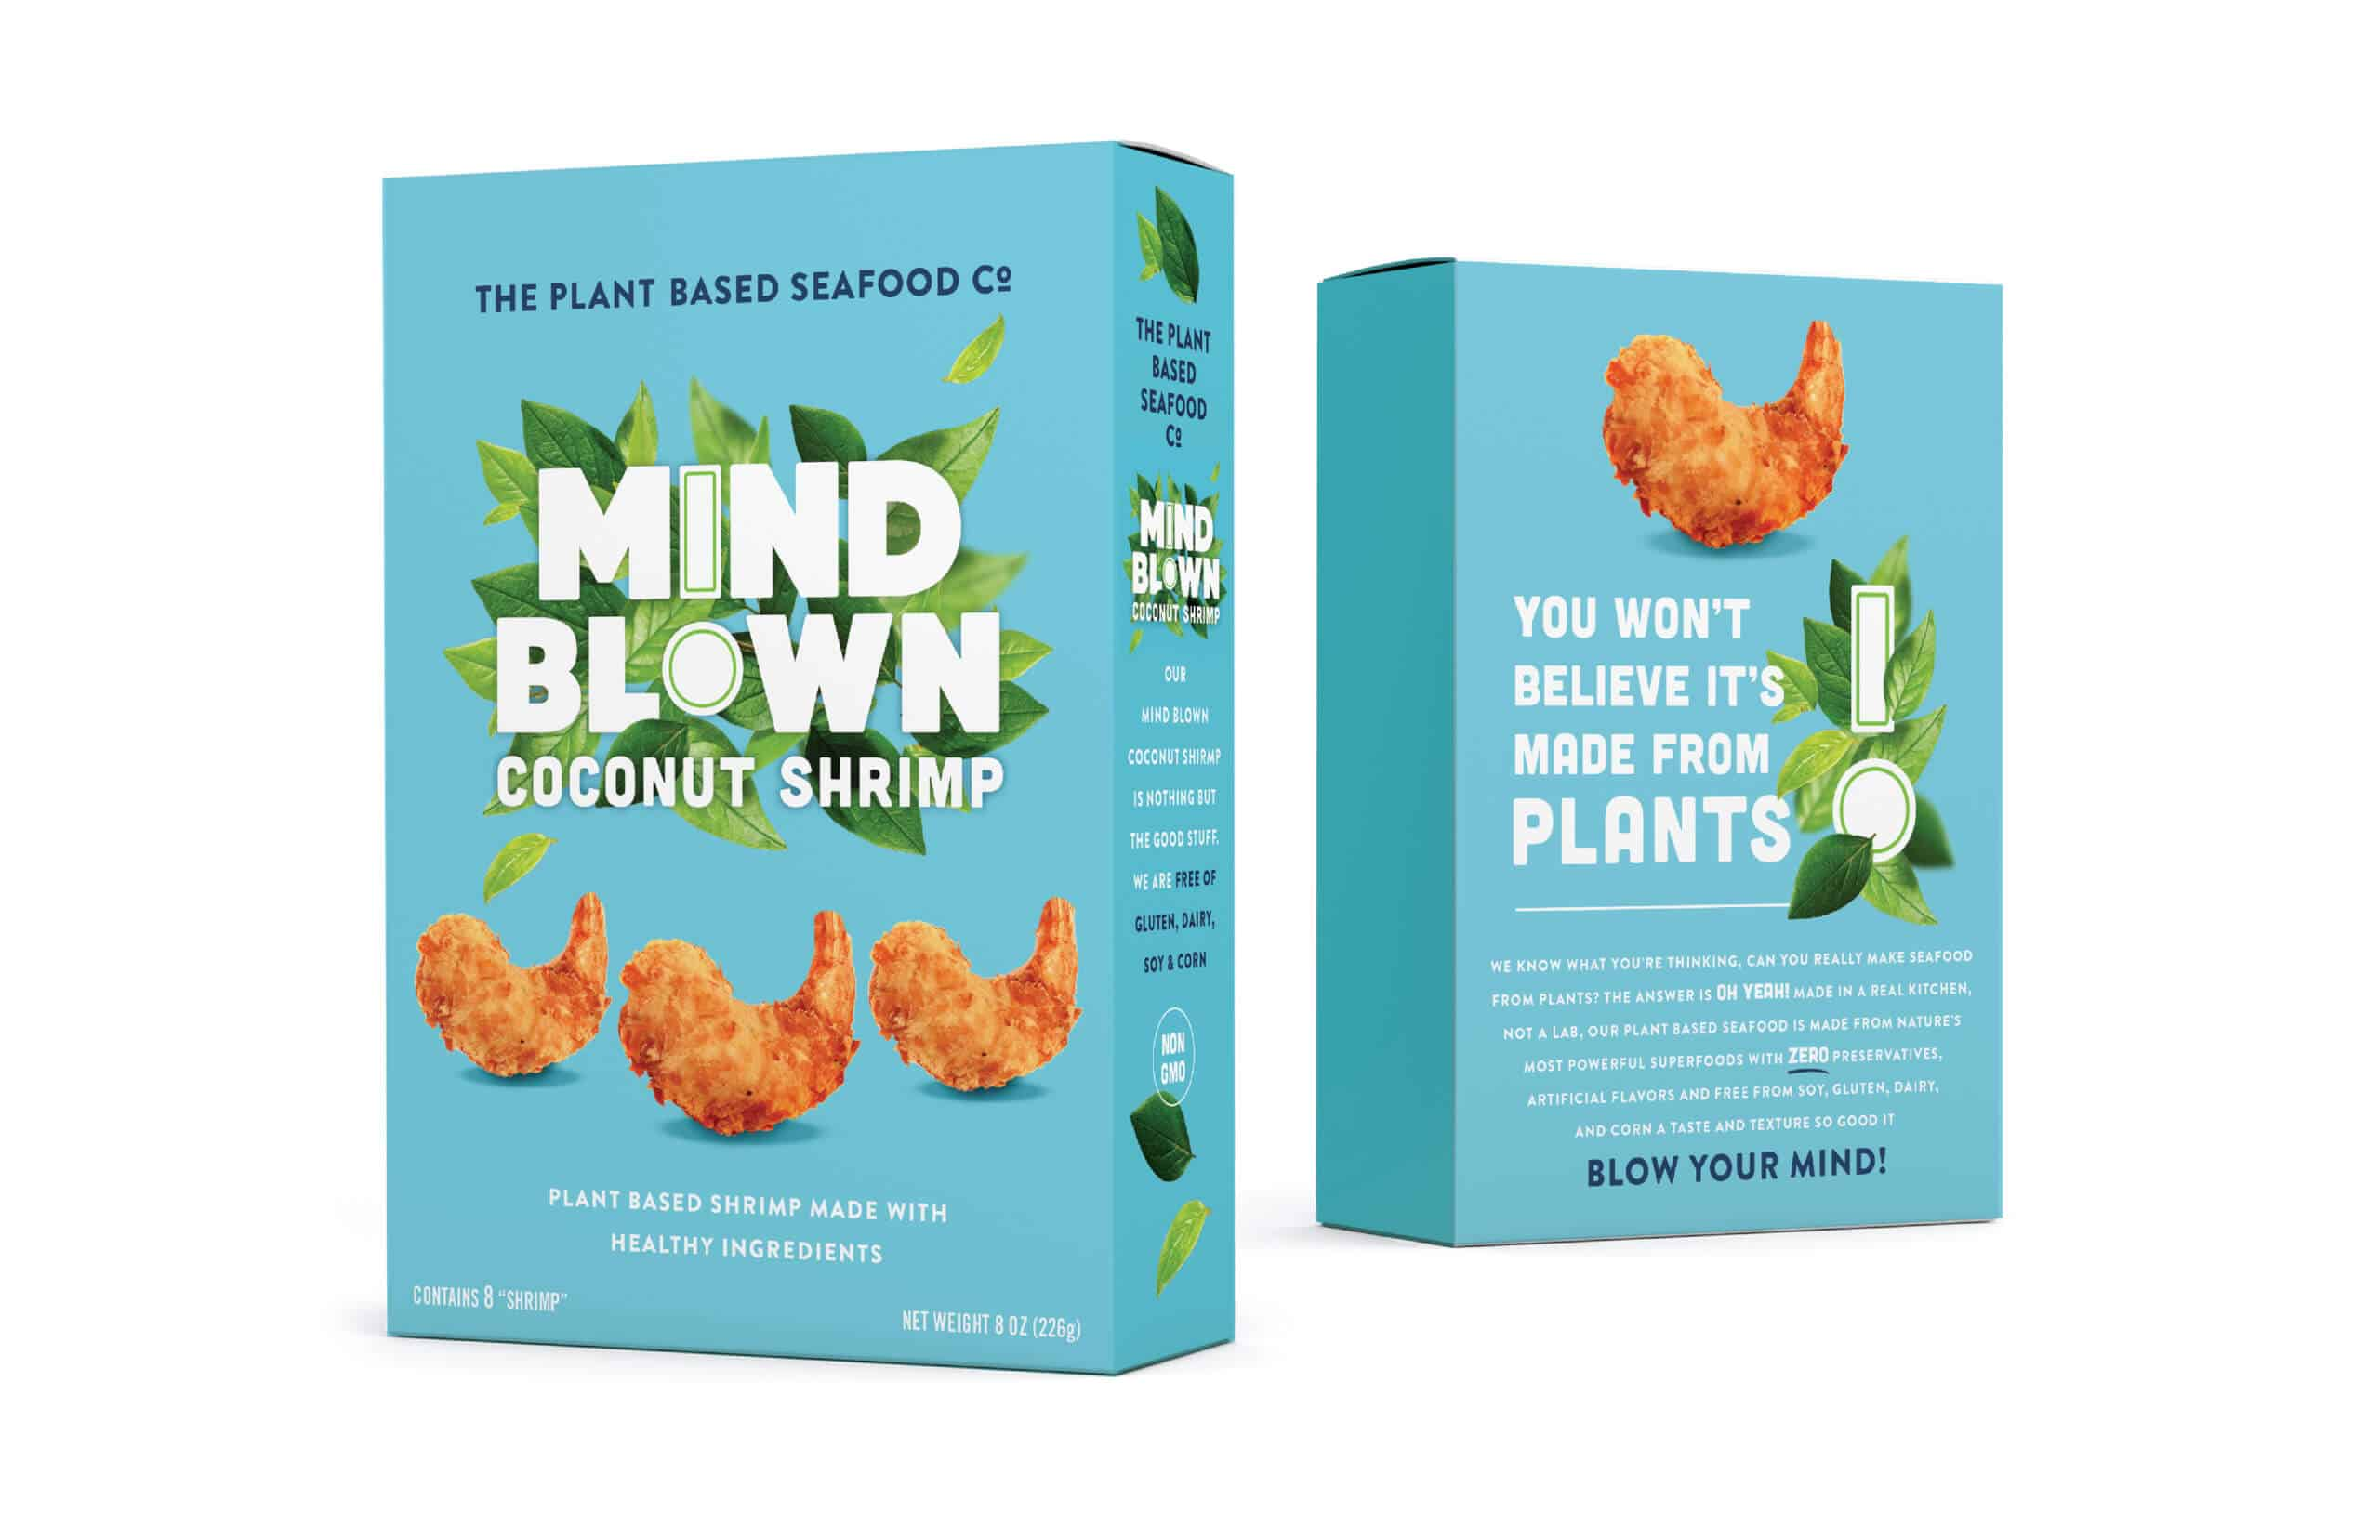 The Plant Based Seafood Co most disruptive product award